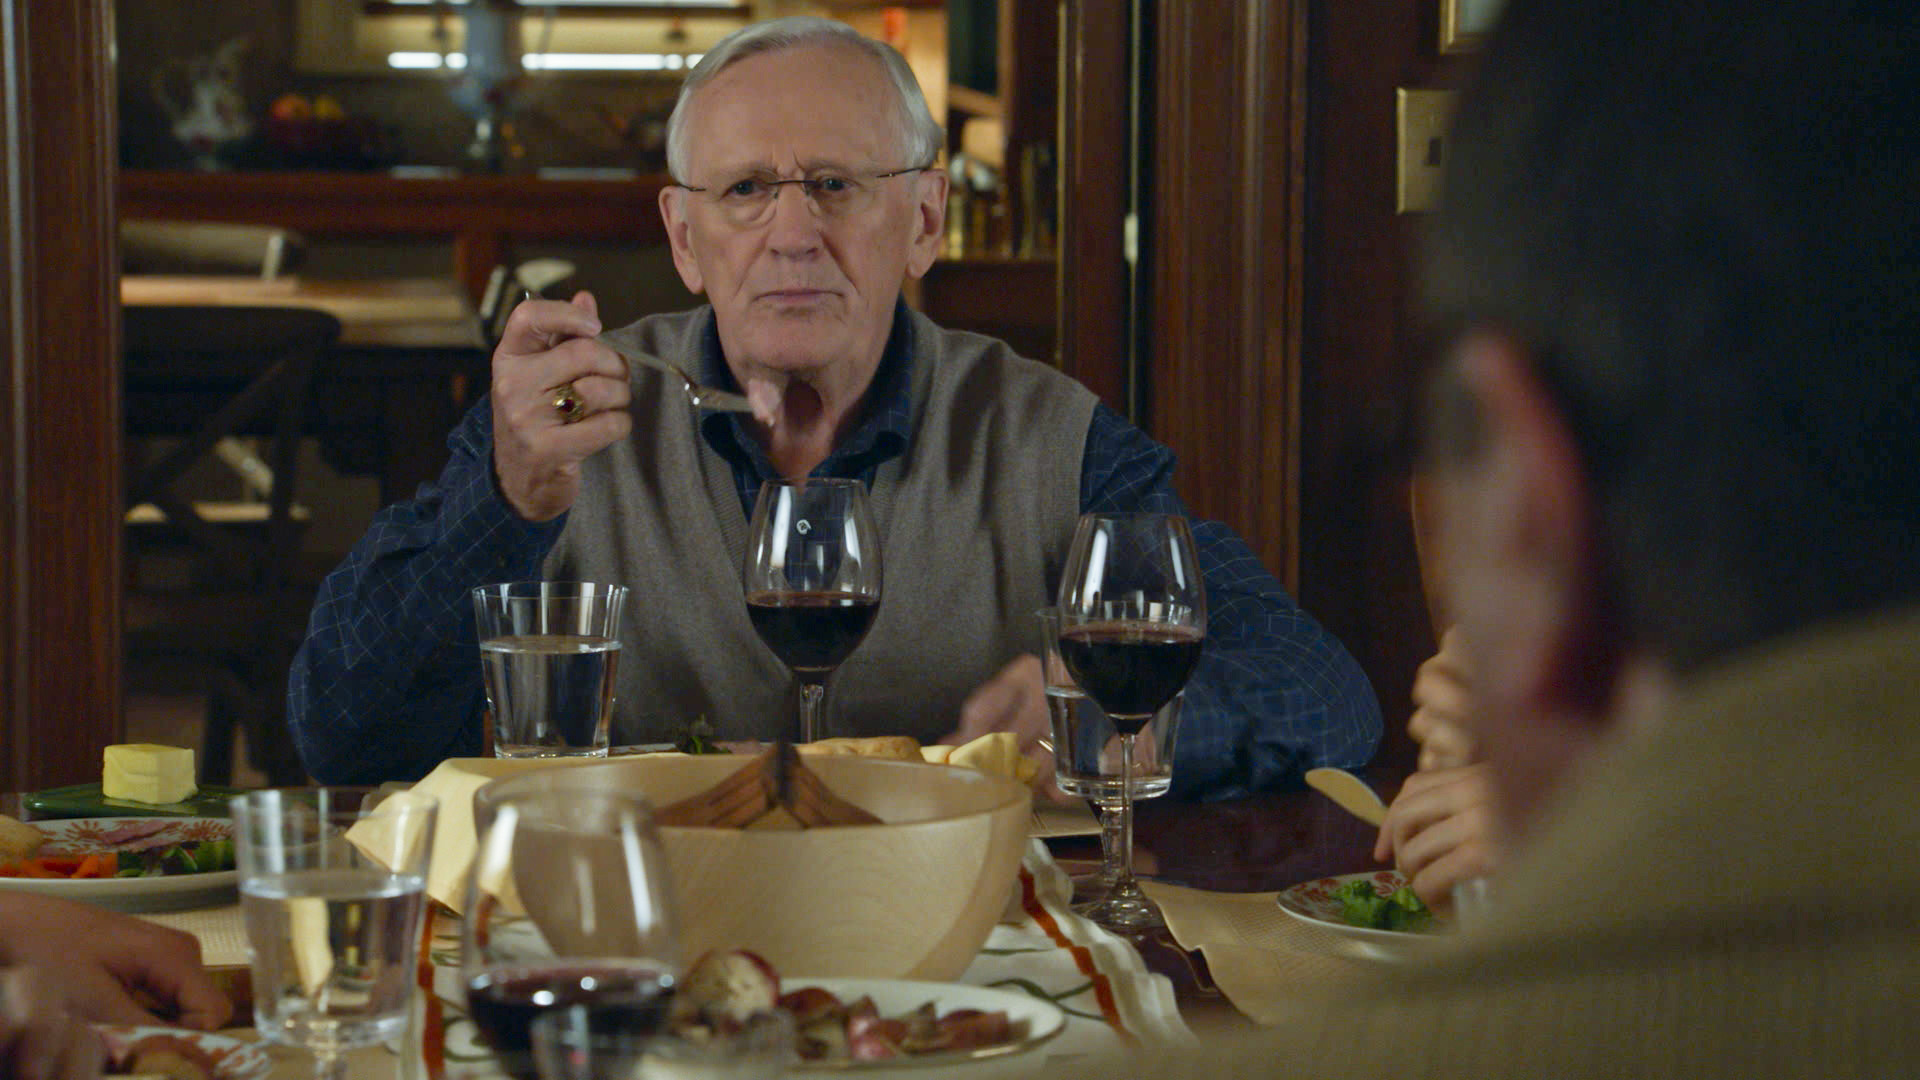 28. Len Cariou loves golf almost as much as he loves his family and friends.